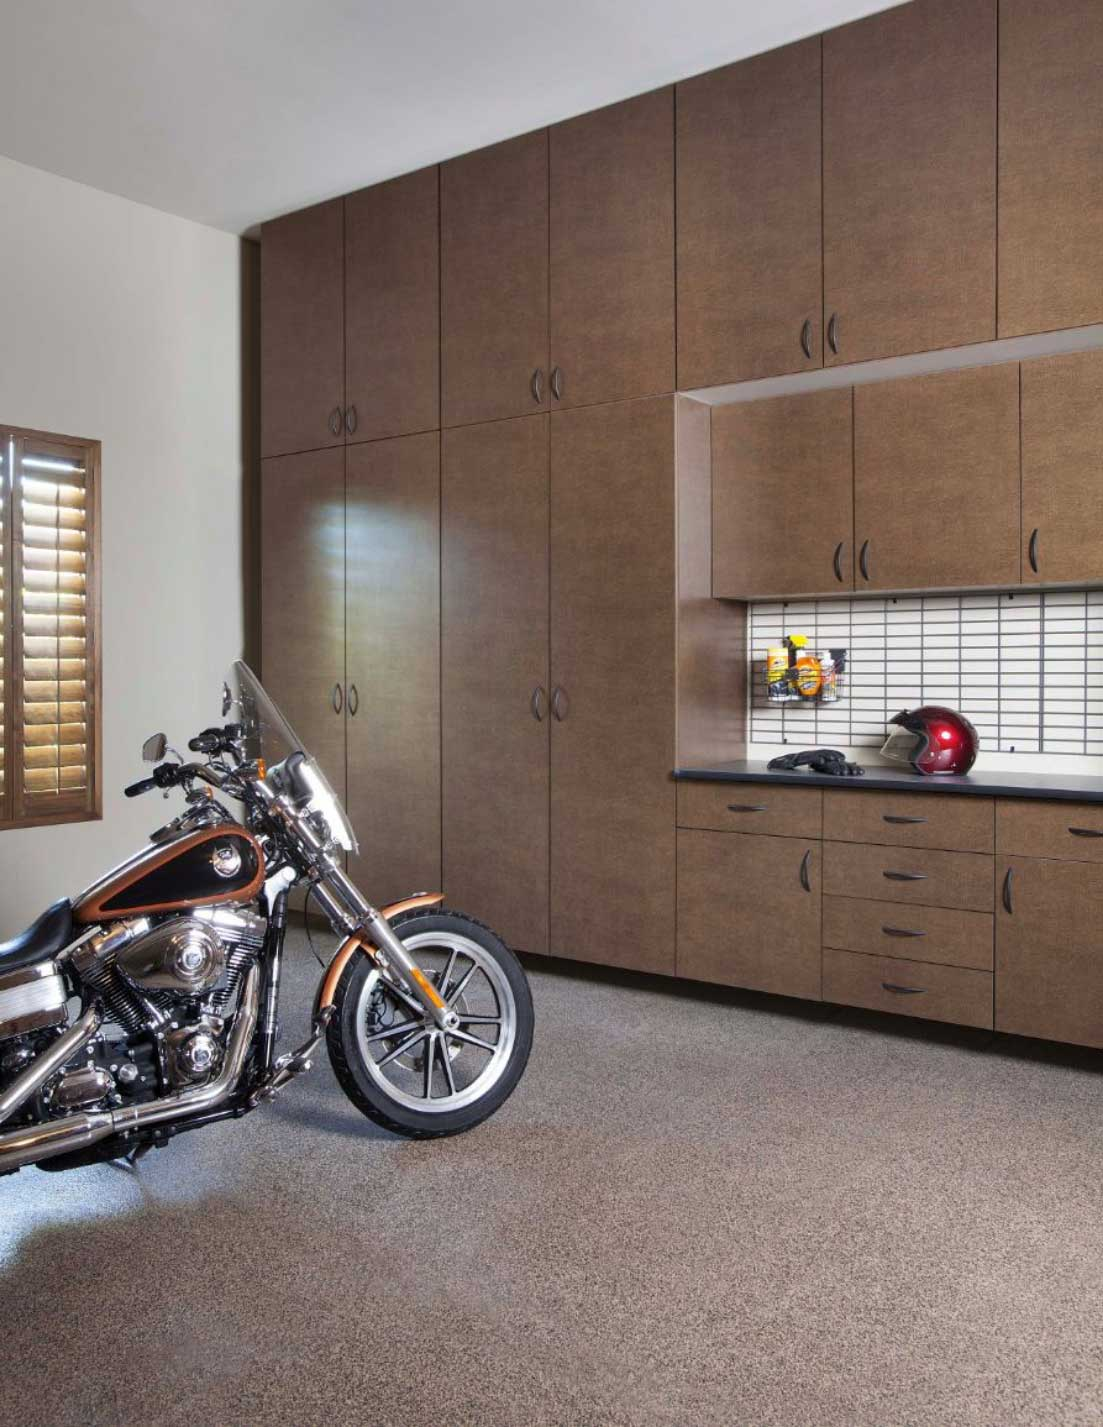 Bronze-Extra-Tall-Cabinets-Inset-Workbench-Motorcycle-Mojave-Floor-Costa.jpg